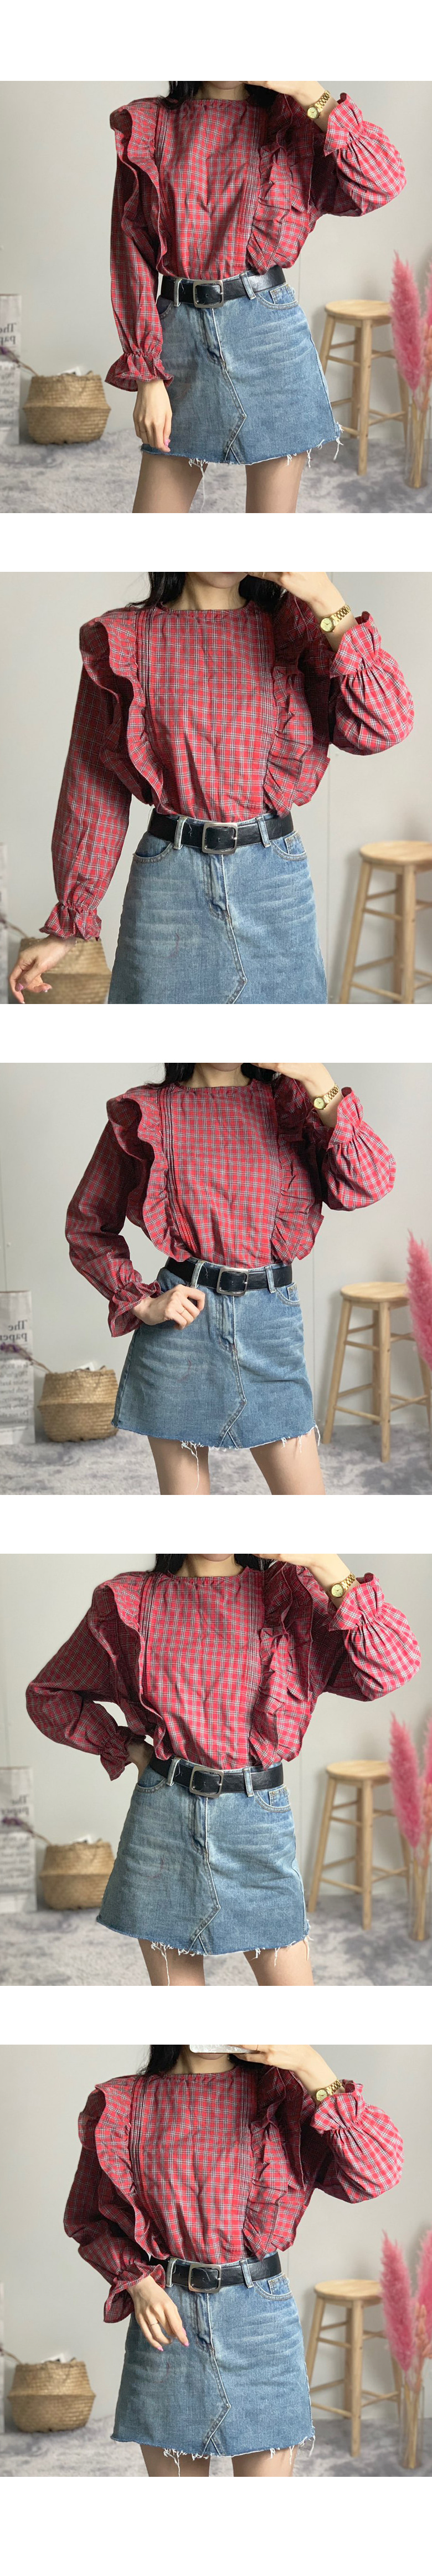 Candy frilly blouse